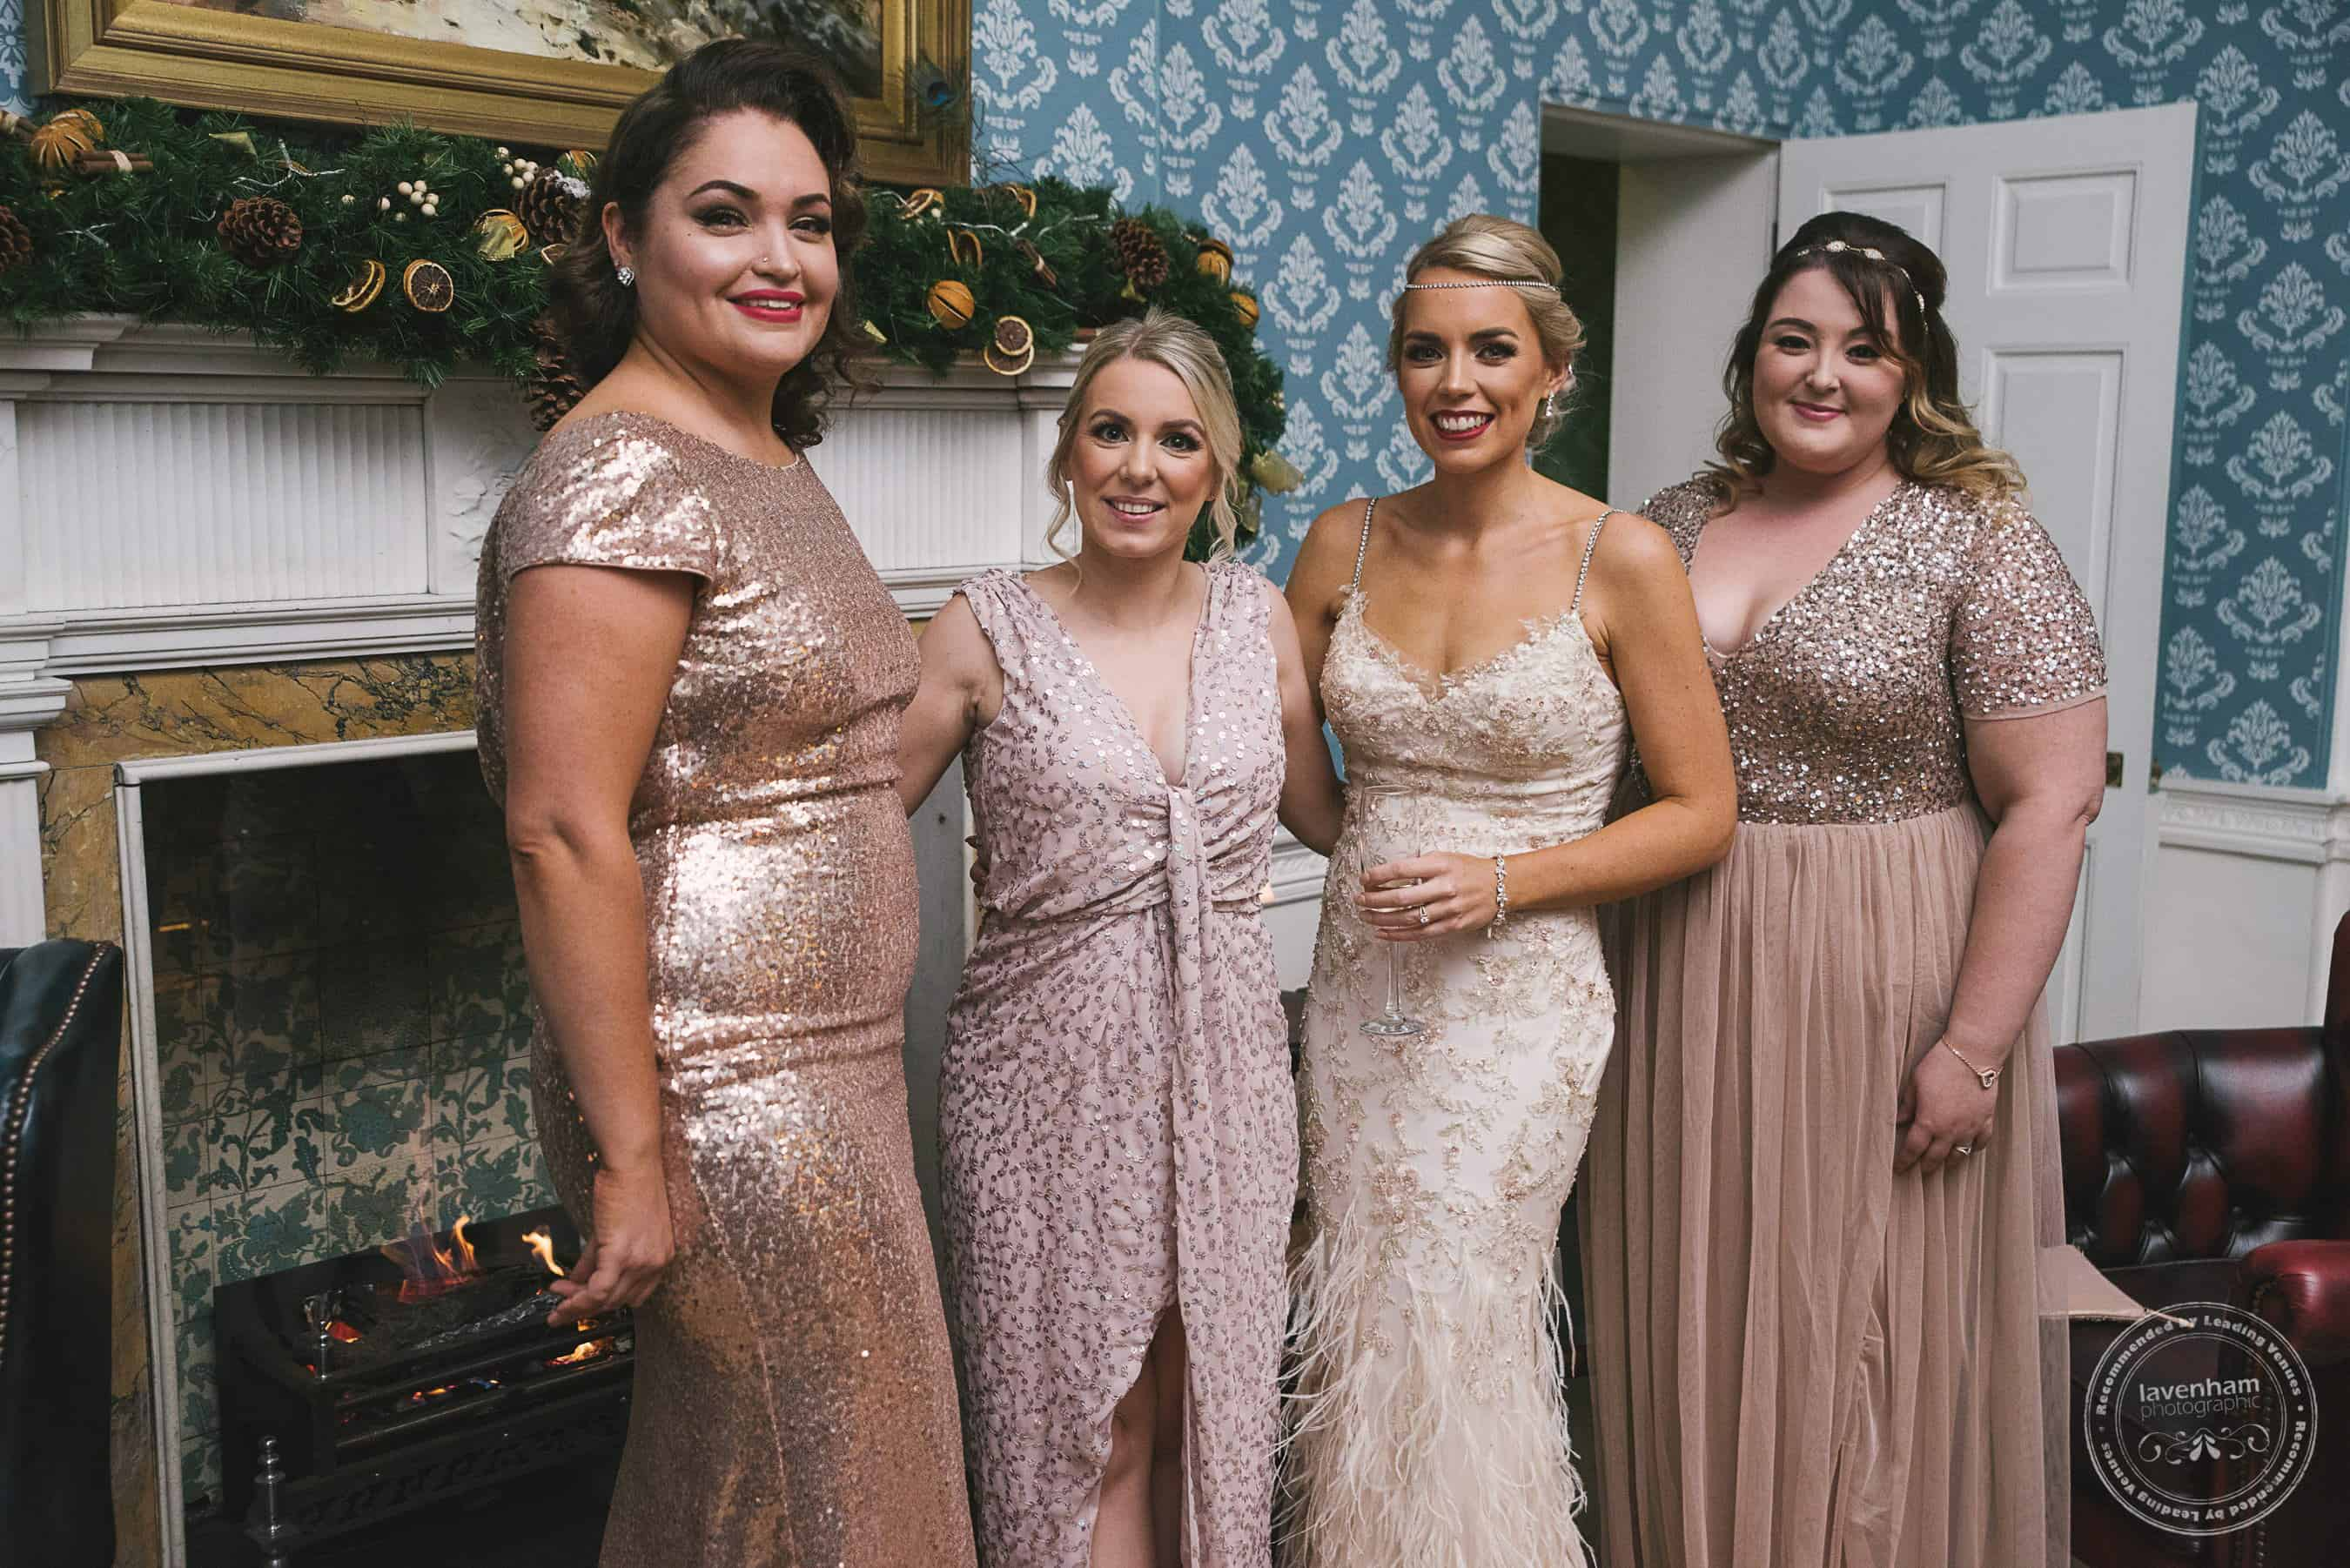 211218 Greyfriars Colchester Wedding Photography Essex Lavenham Photographic 032